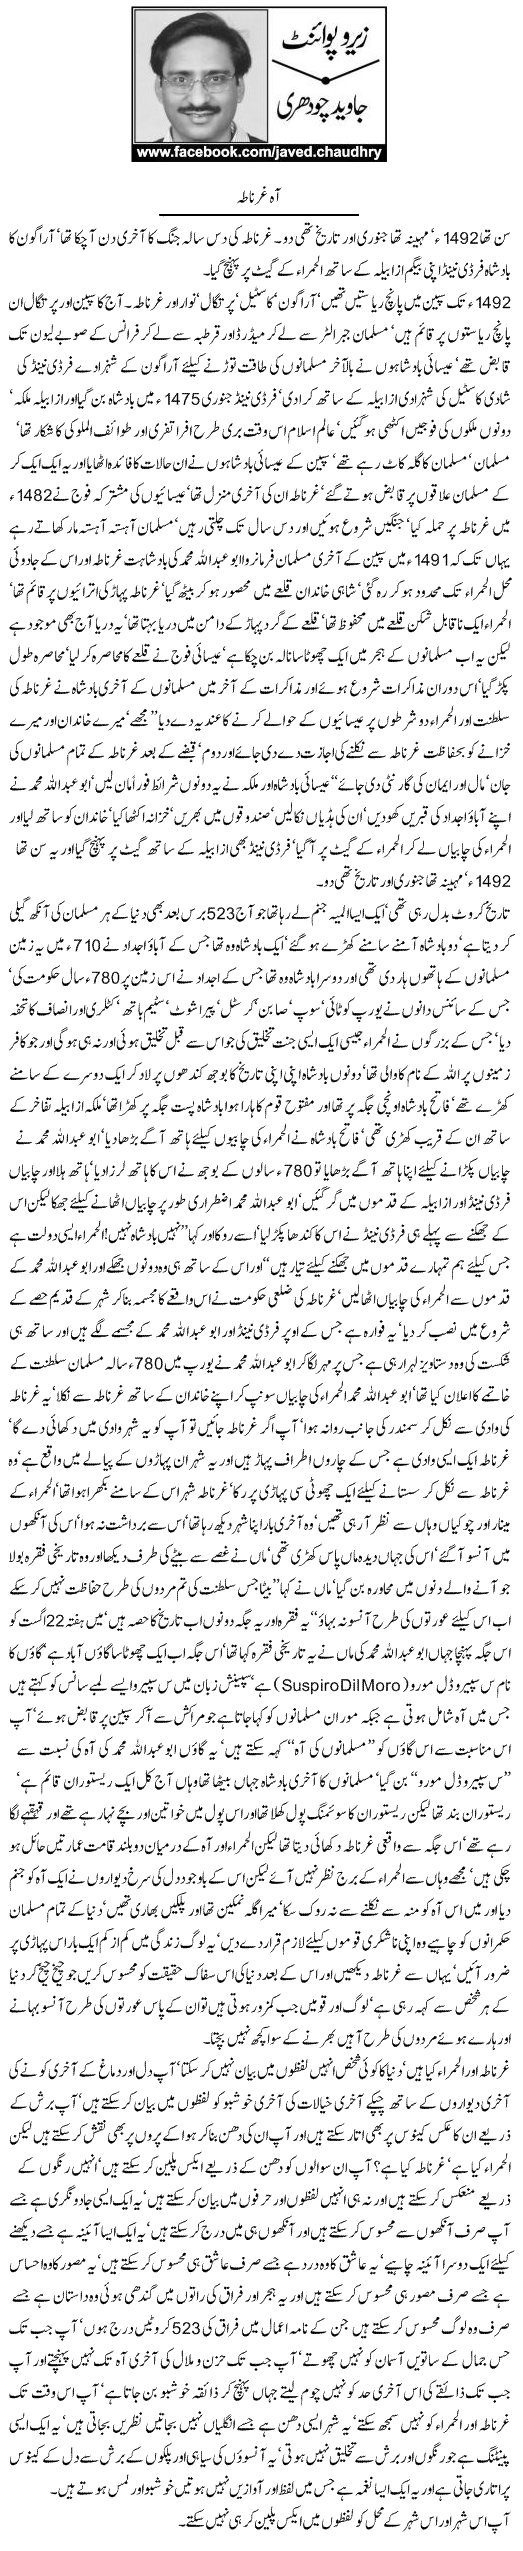 Javed Chaudhry Column | Aah Ghernatah | Zero Point